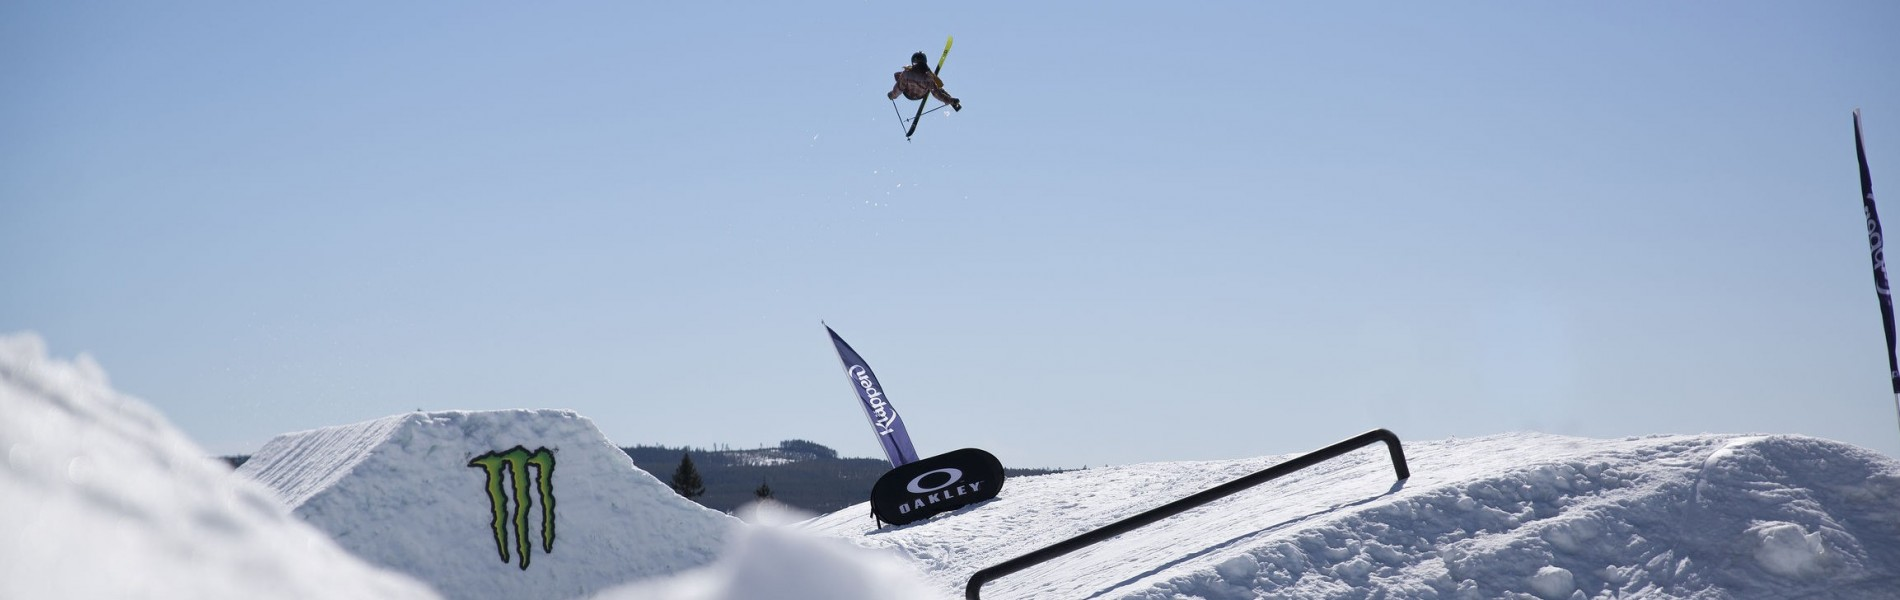 Kimbosessions in kläppen is a media event with ski and snowboard.